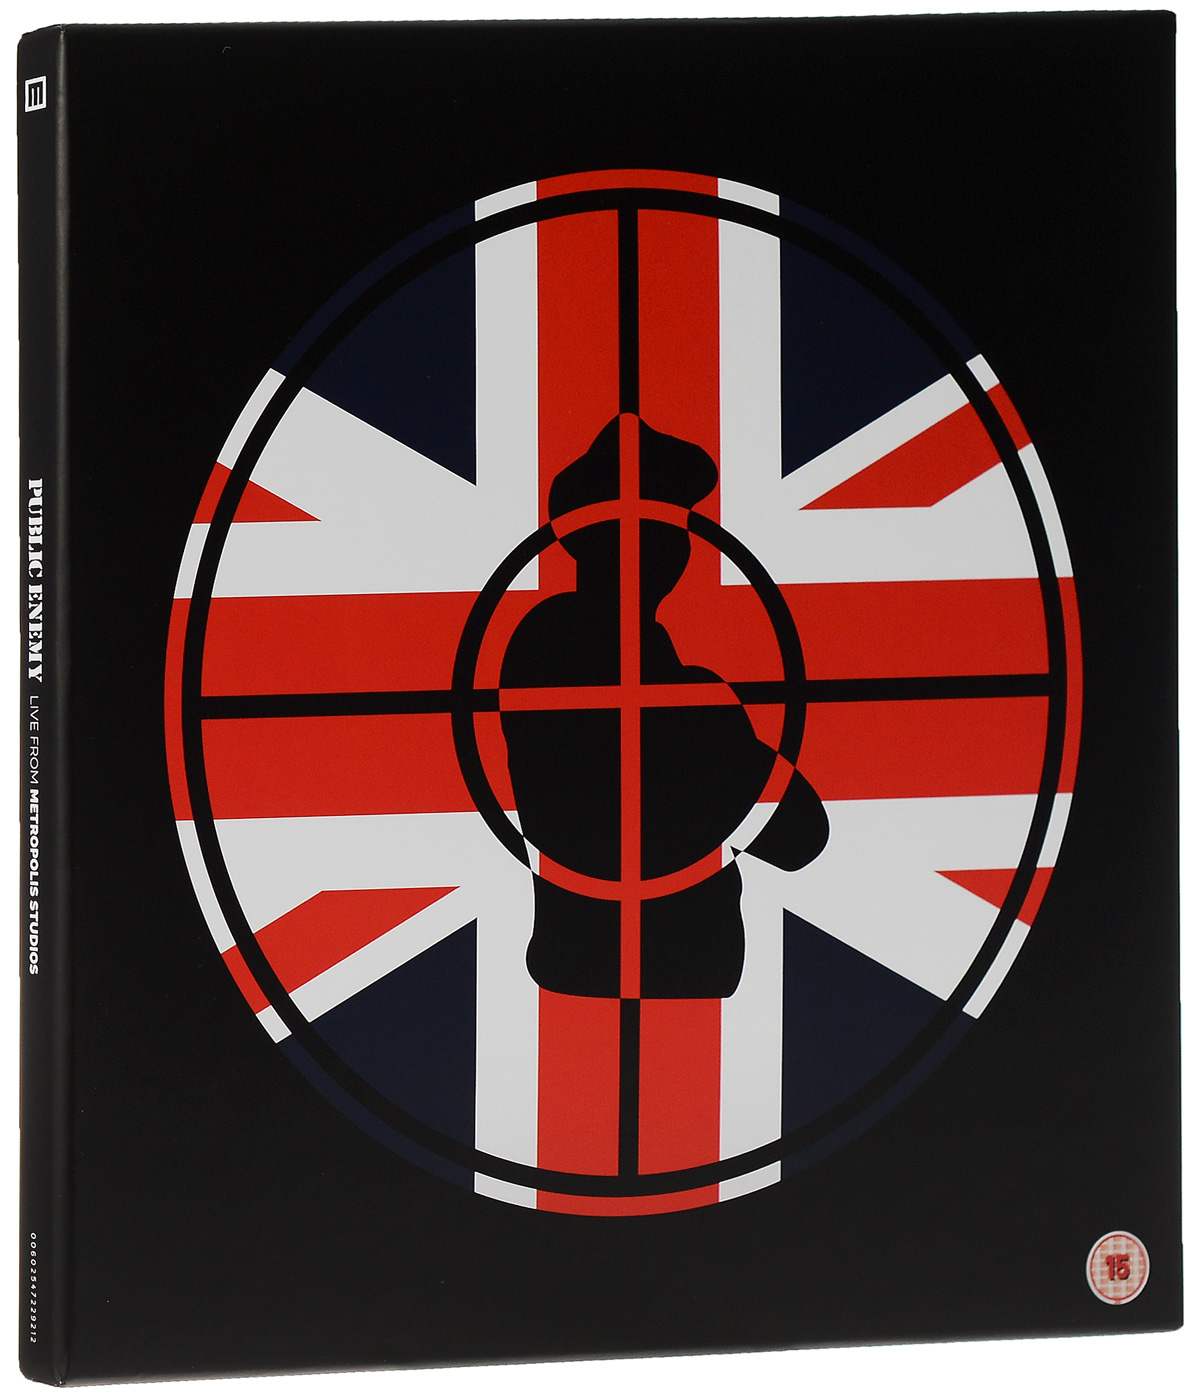 Public Enemy Public Enemy. Live From Metropolis Studios (2 LP) public enemy public enemy live from metropolis studios limited edition 2 cd 2 lp blu ray